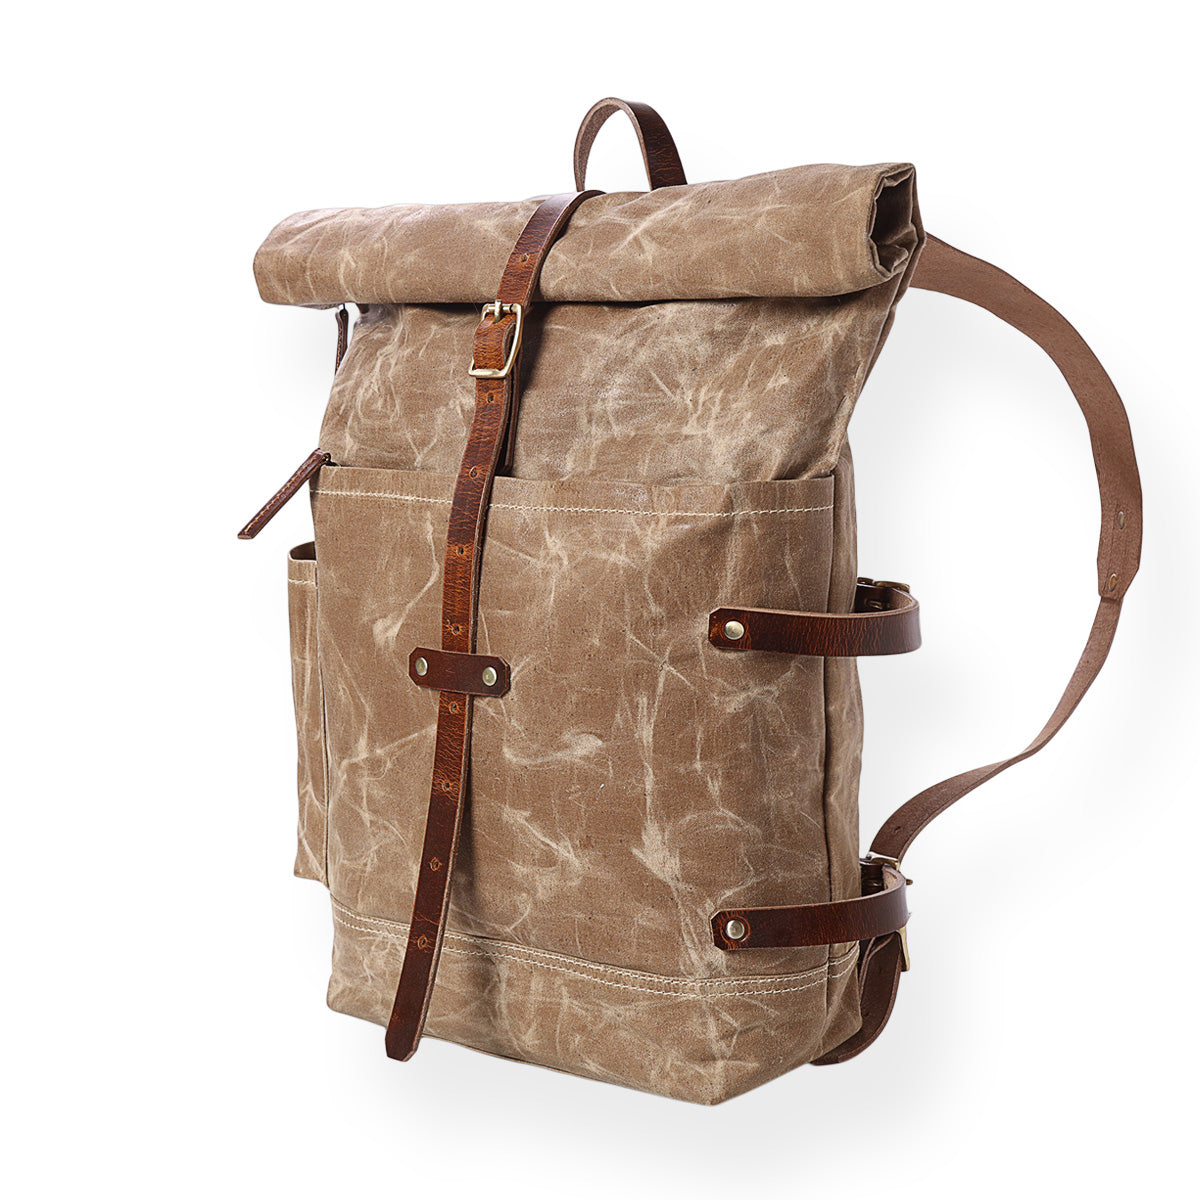 waxed canvas backpack,laptop backpack,waxed canvas leather bag,roll top travel backpack,rugged backpack,rucksack,canvas backpack,leather bag United States